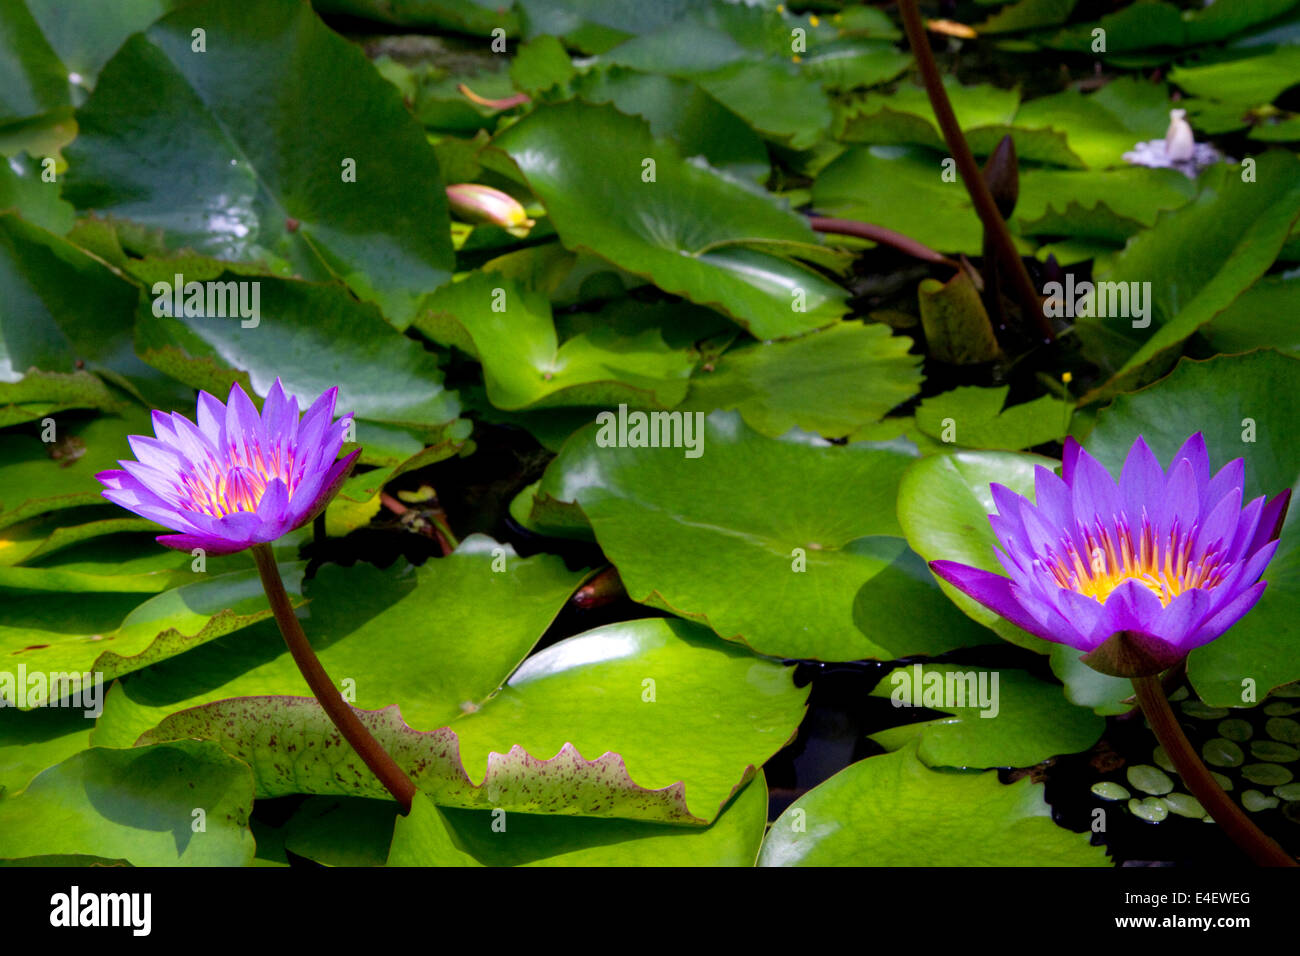 French lily stock photos french lily stock images alamy nymphaea nouchali star lotus water lily on the island of tahiti french polynesia izmirmasajfo